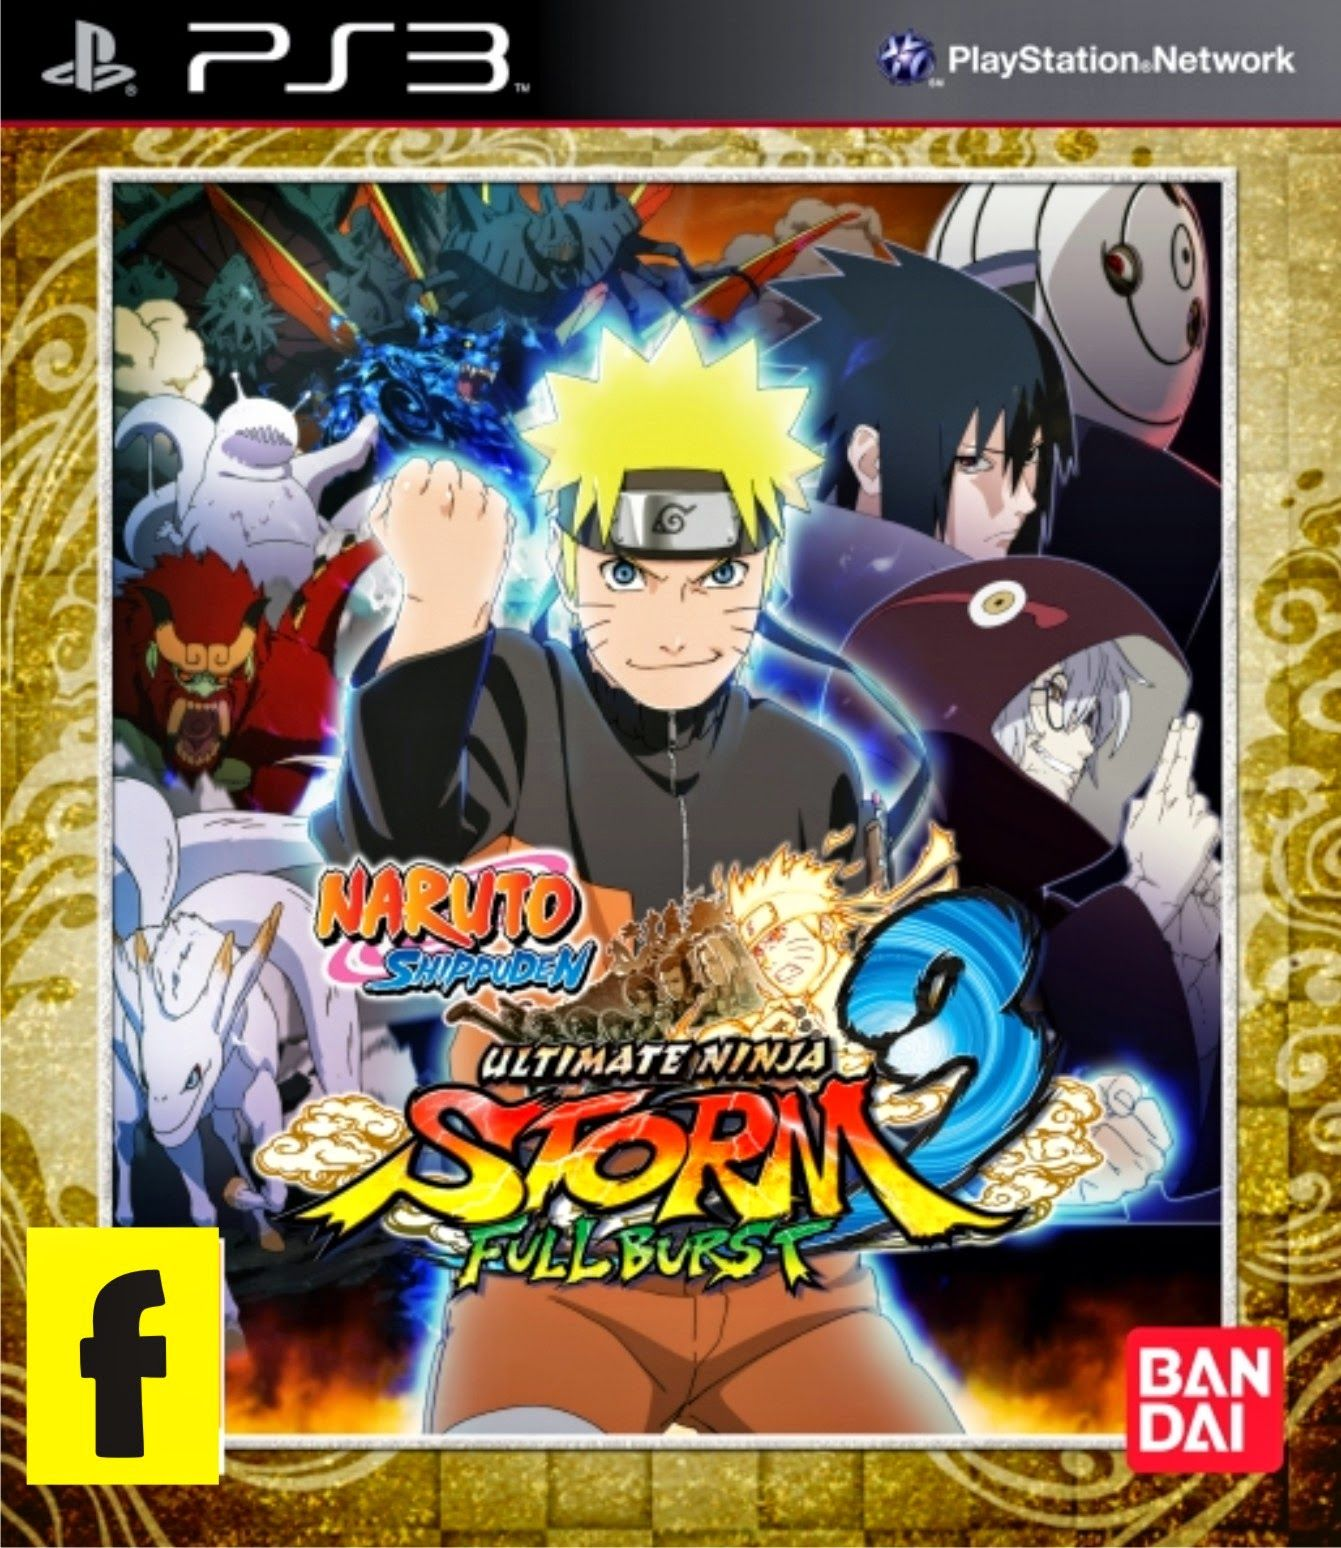 Naruto Shippuden Ultimate Ninja Storm 3 Full Burst | PS3